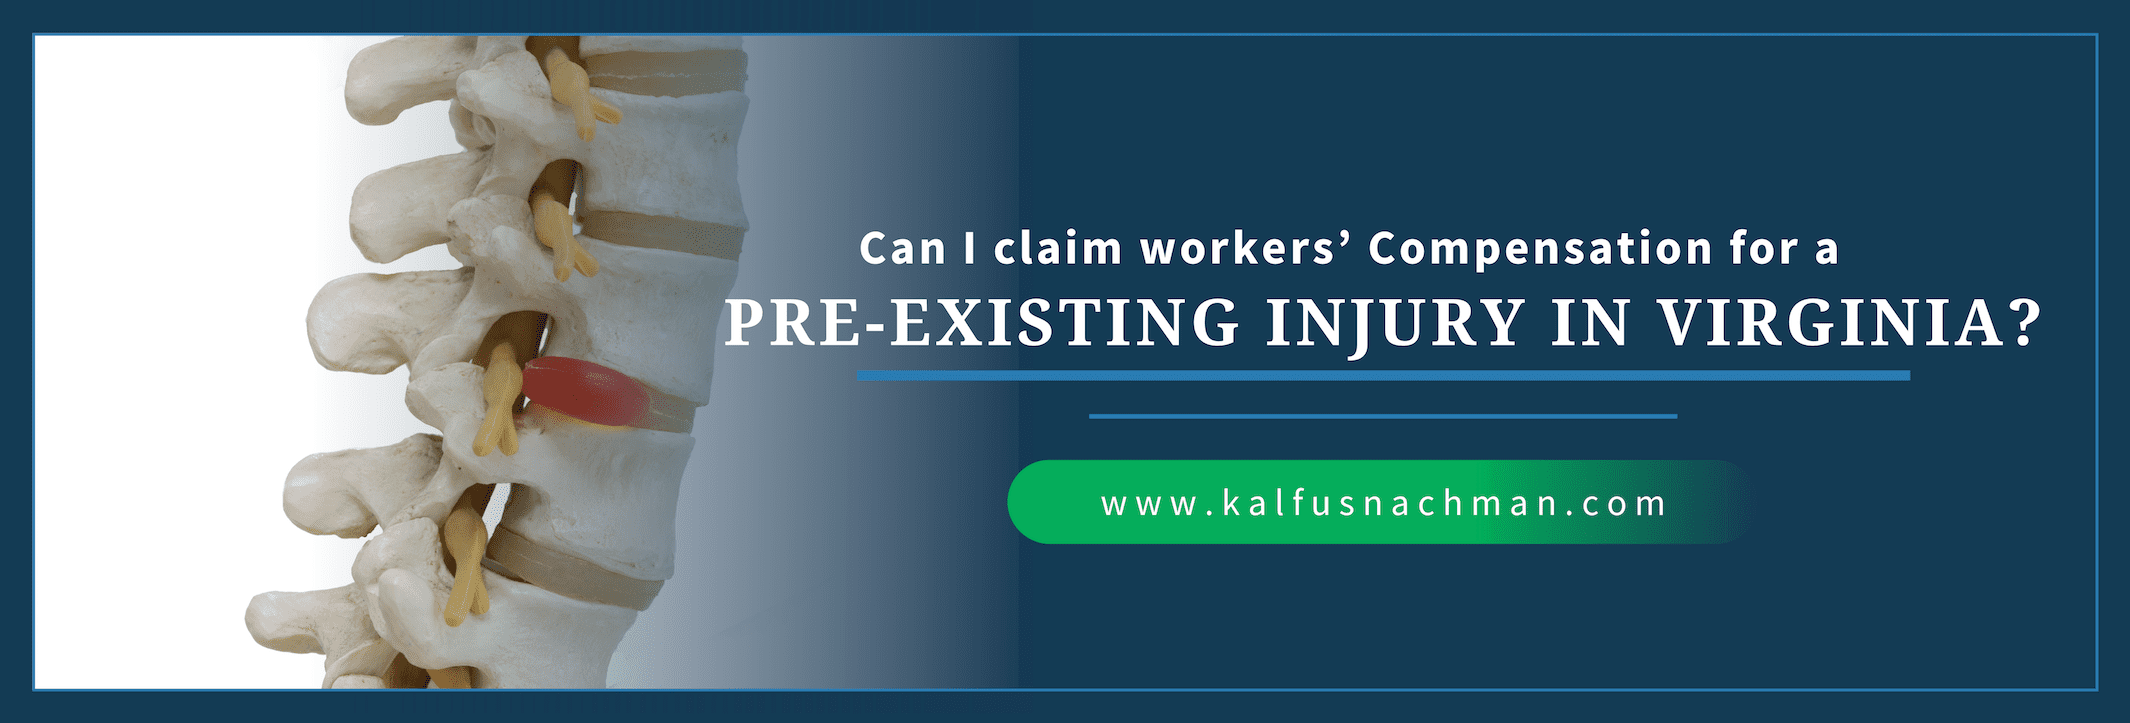 Can I Claim Workers' Compensation For A Pre-Existing Injury in Virginia?